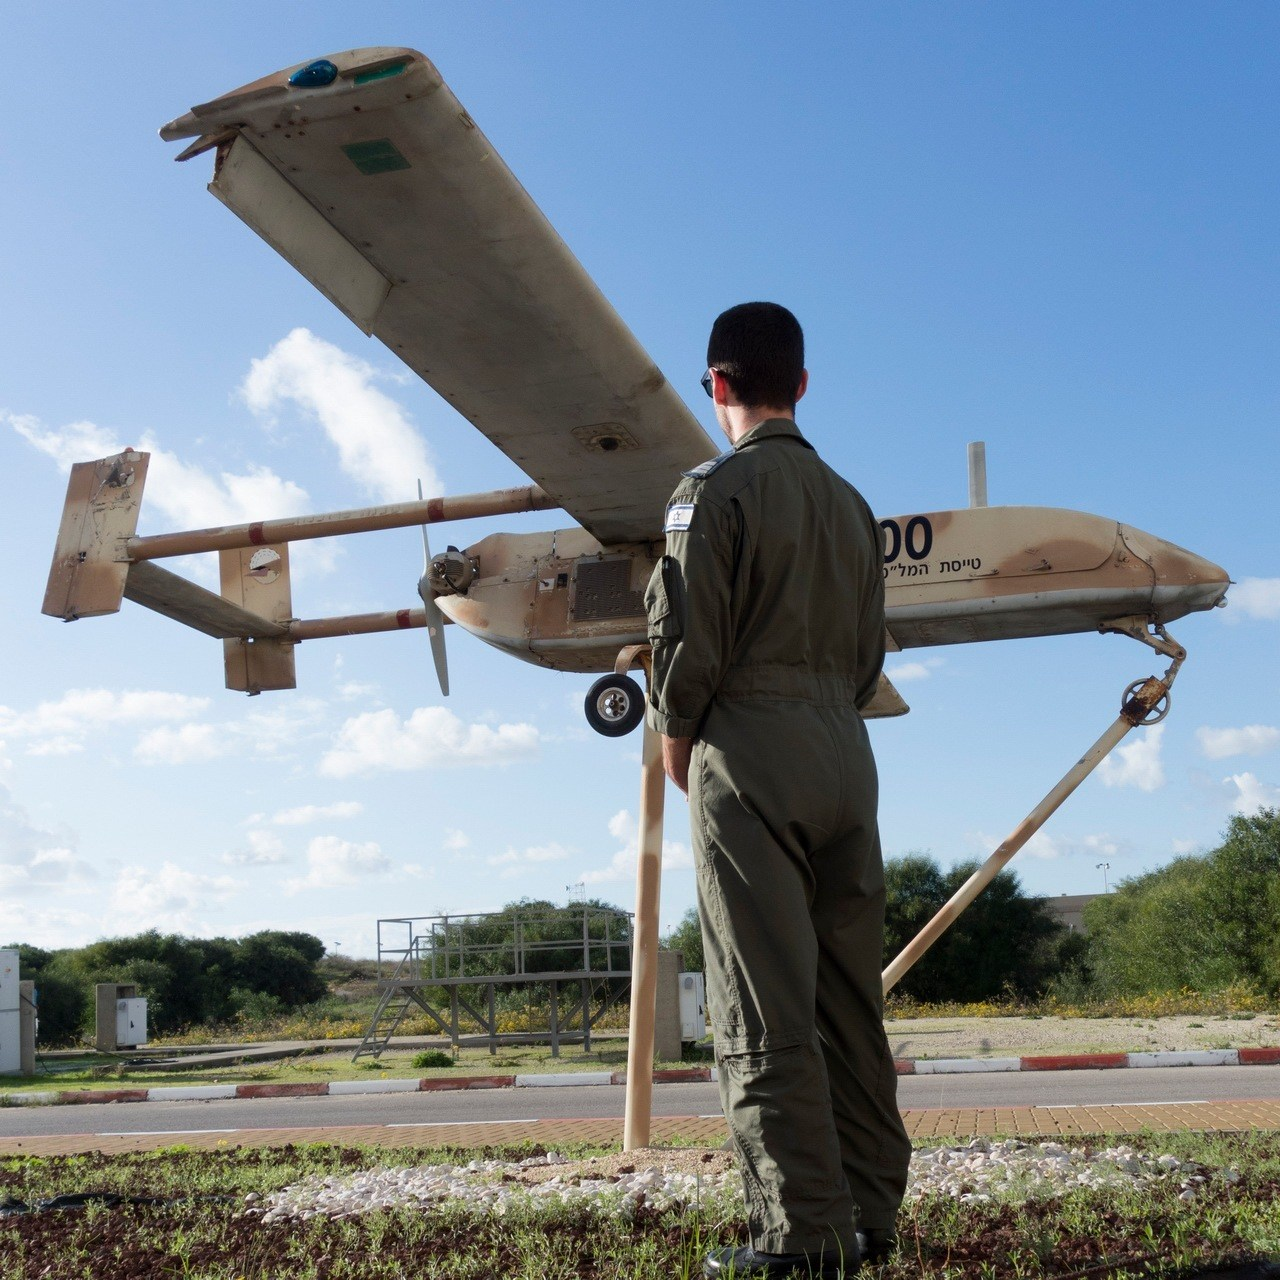 Eyes in the sky: Israel Defence Forces drones